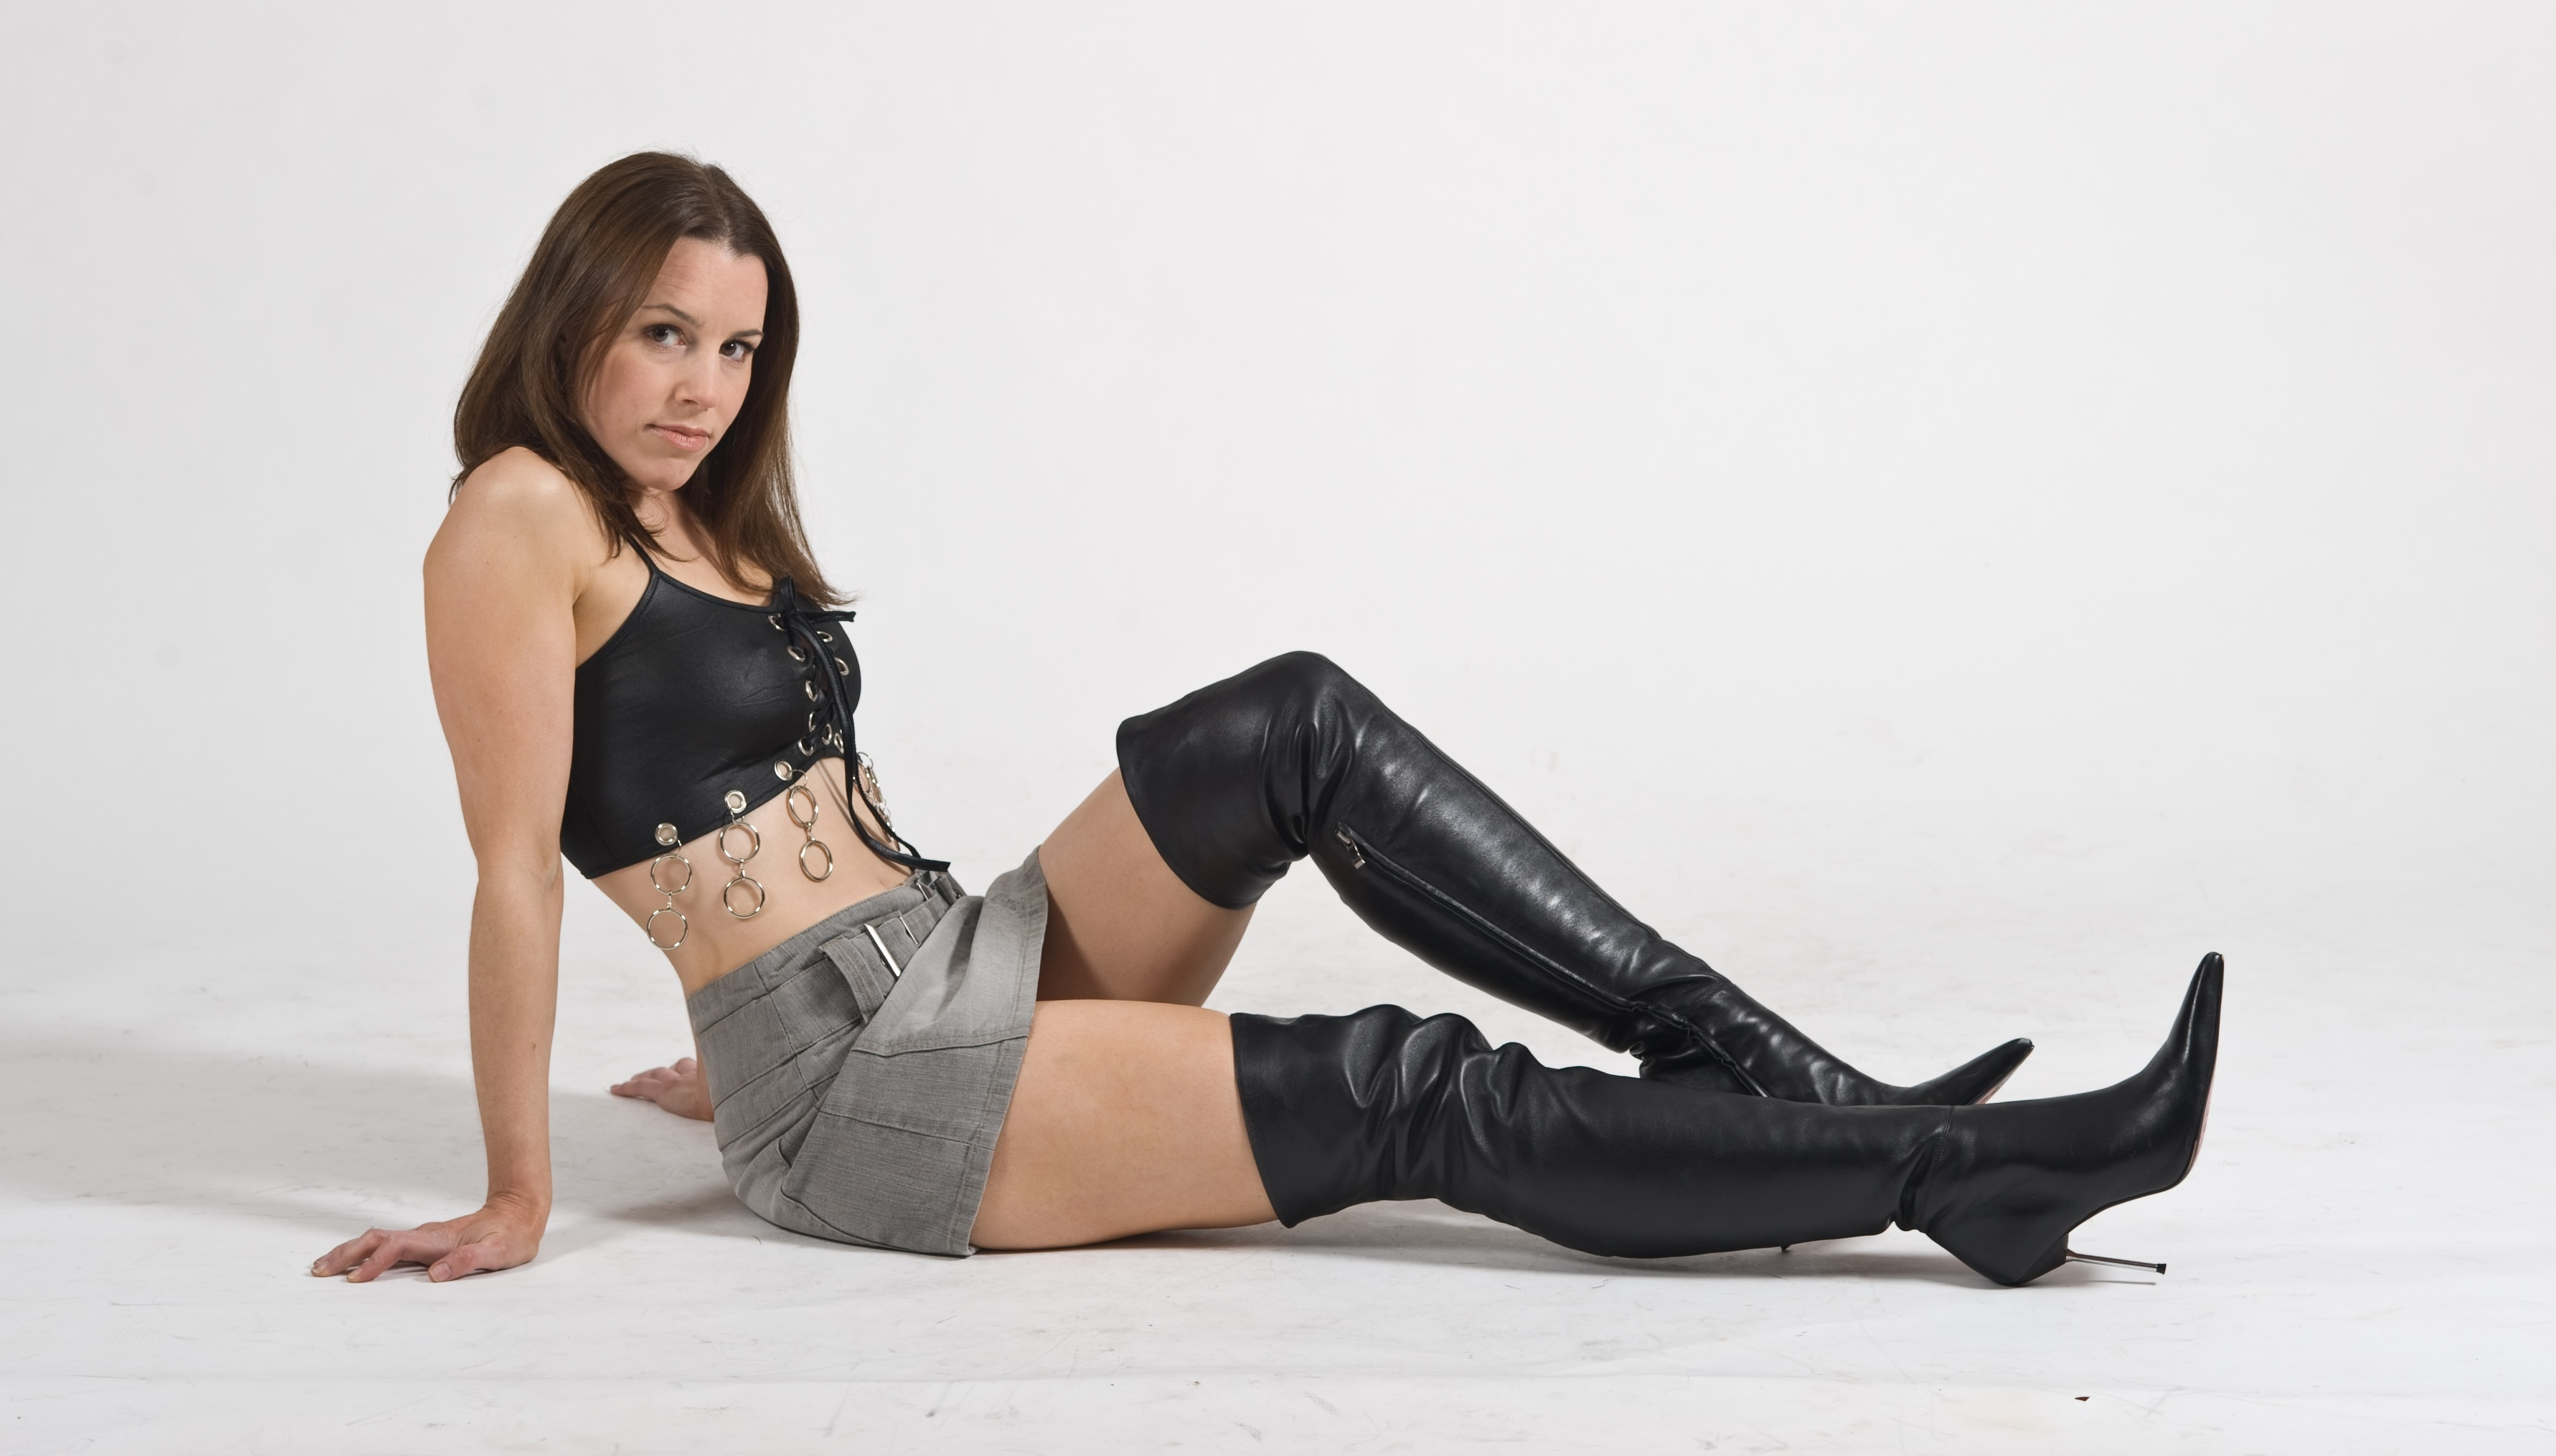 Top rated Euro babe Lou Charmelle strikes sexy poses in kinky black boots № 839766  скачать